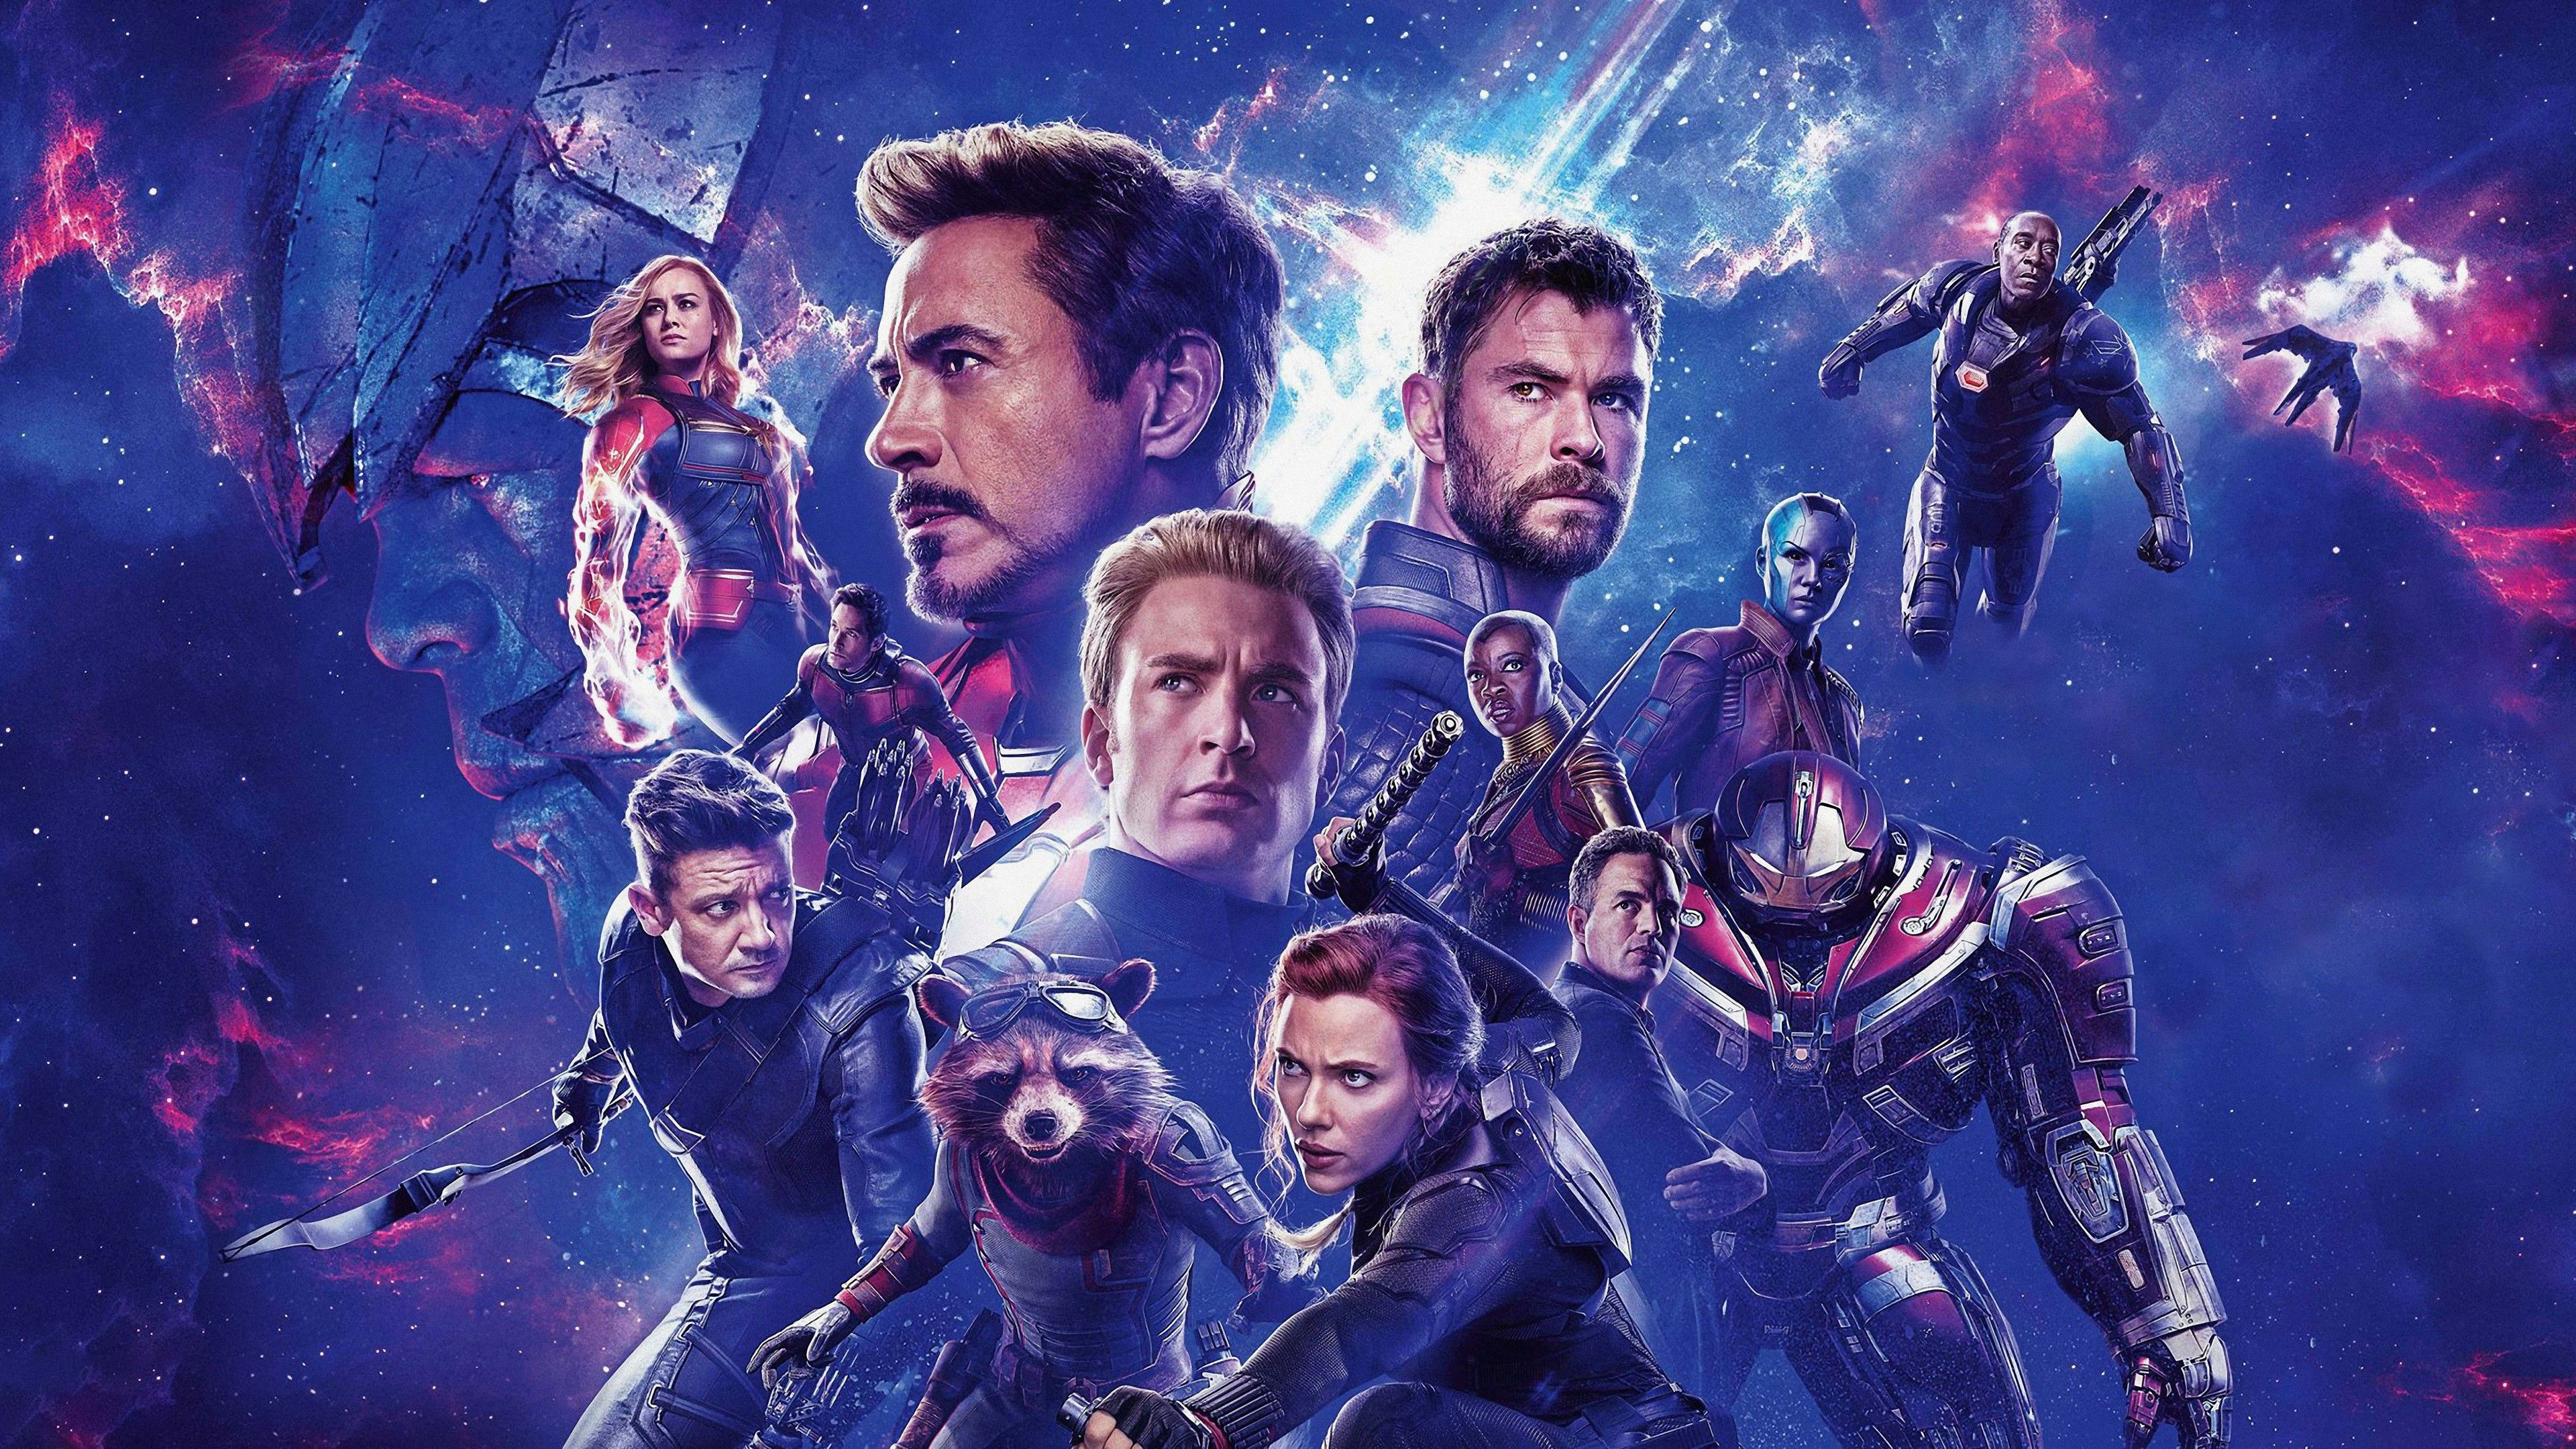 Wallpaper 4k Avengers Endgame 4k 10k Wallpapers 12k Wallpapers 2019 Movies Wallpapers 4k Wallpapers 5k Wallpapers 8k Wallpapers Avengers End Game Wallpape Avengers Marvel Posters Movie Wallpapers